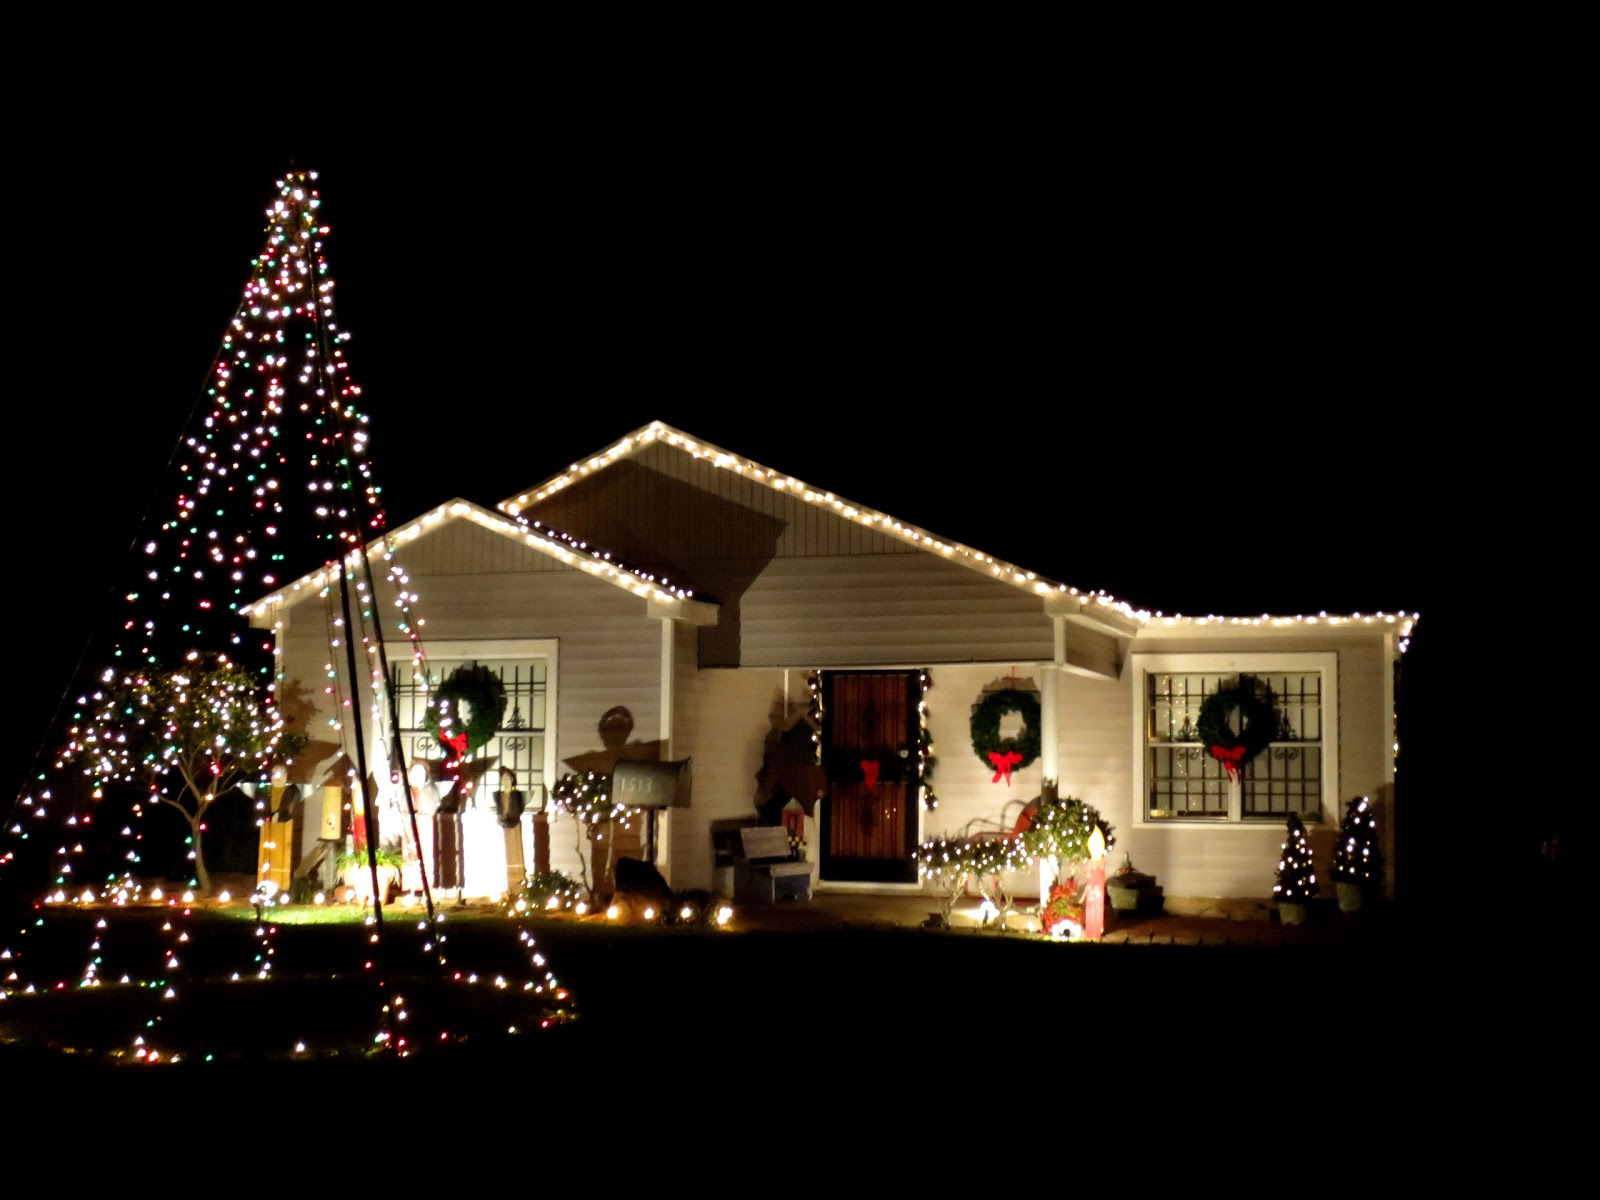 The OtHeR HoUsToN: MY PICKS FOR BEST BUNGALOW CHRISTMAS LIGHTS